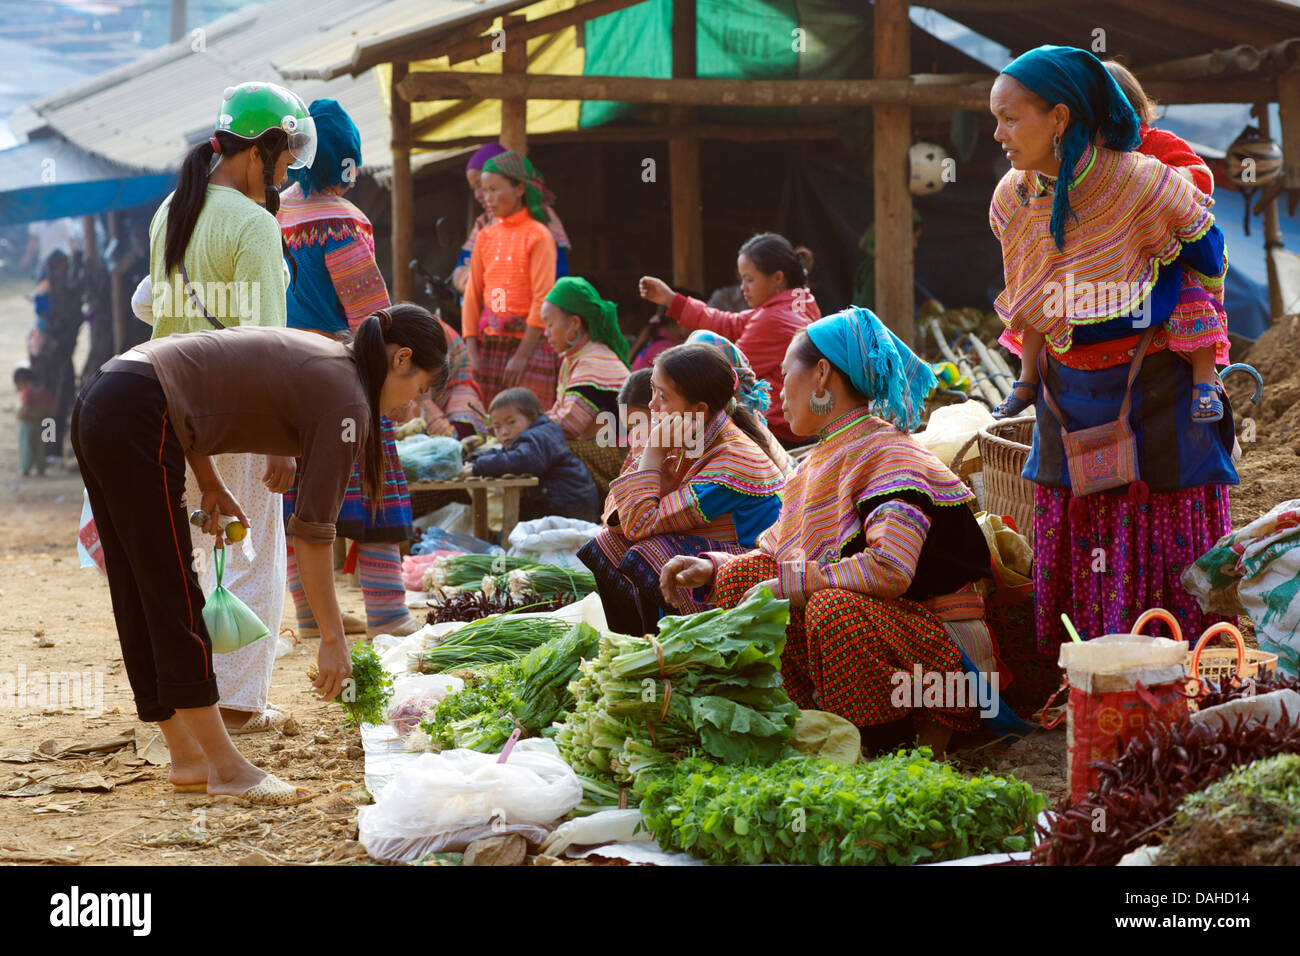 Vegetable sellers at Can Cau market, near Bac Ha. Lao Cai Province, Northern Vietnam - Stock Image